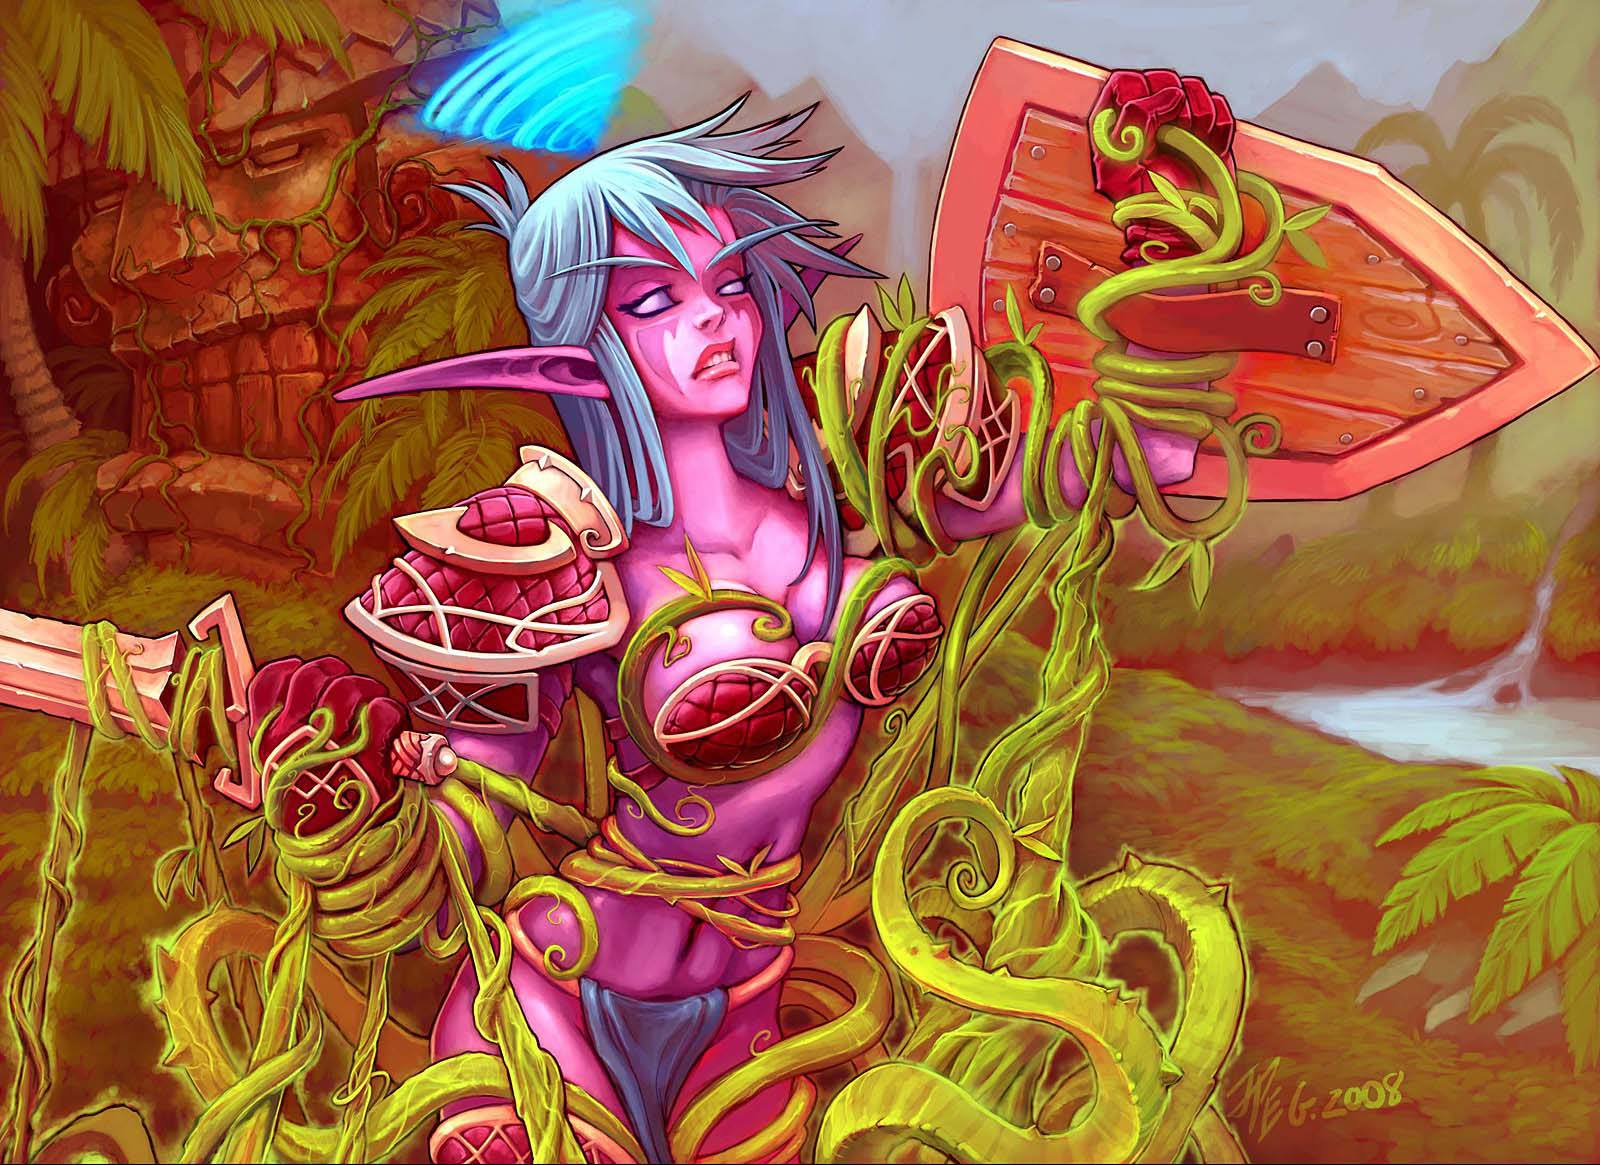 World of warcraft tentacle fuck exploited pic